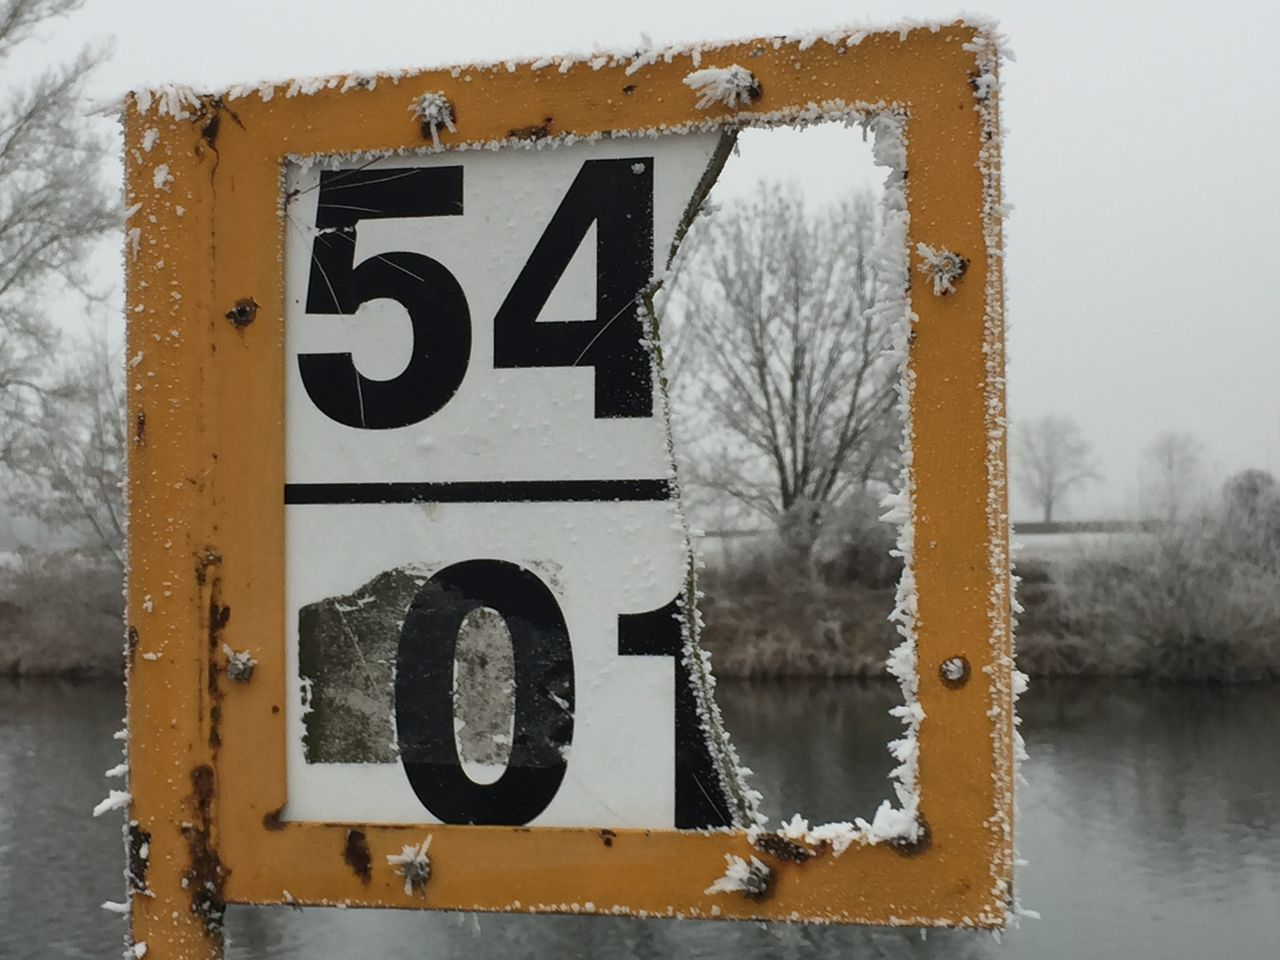 CLOSE-UP OF SIGN ON SNOW